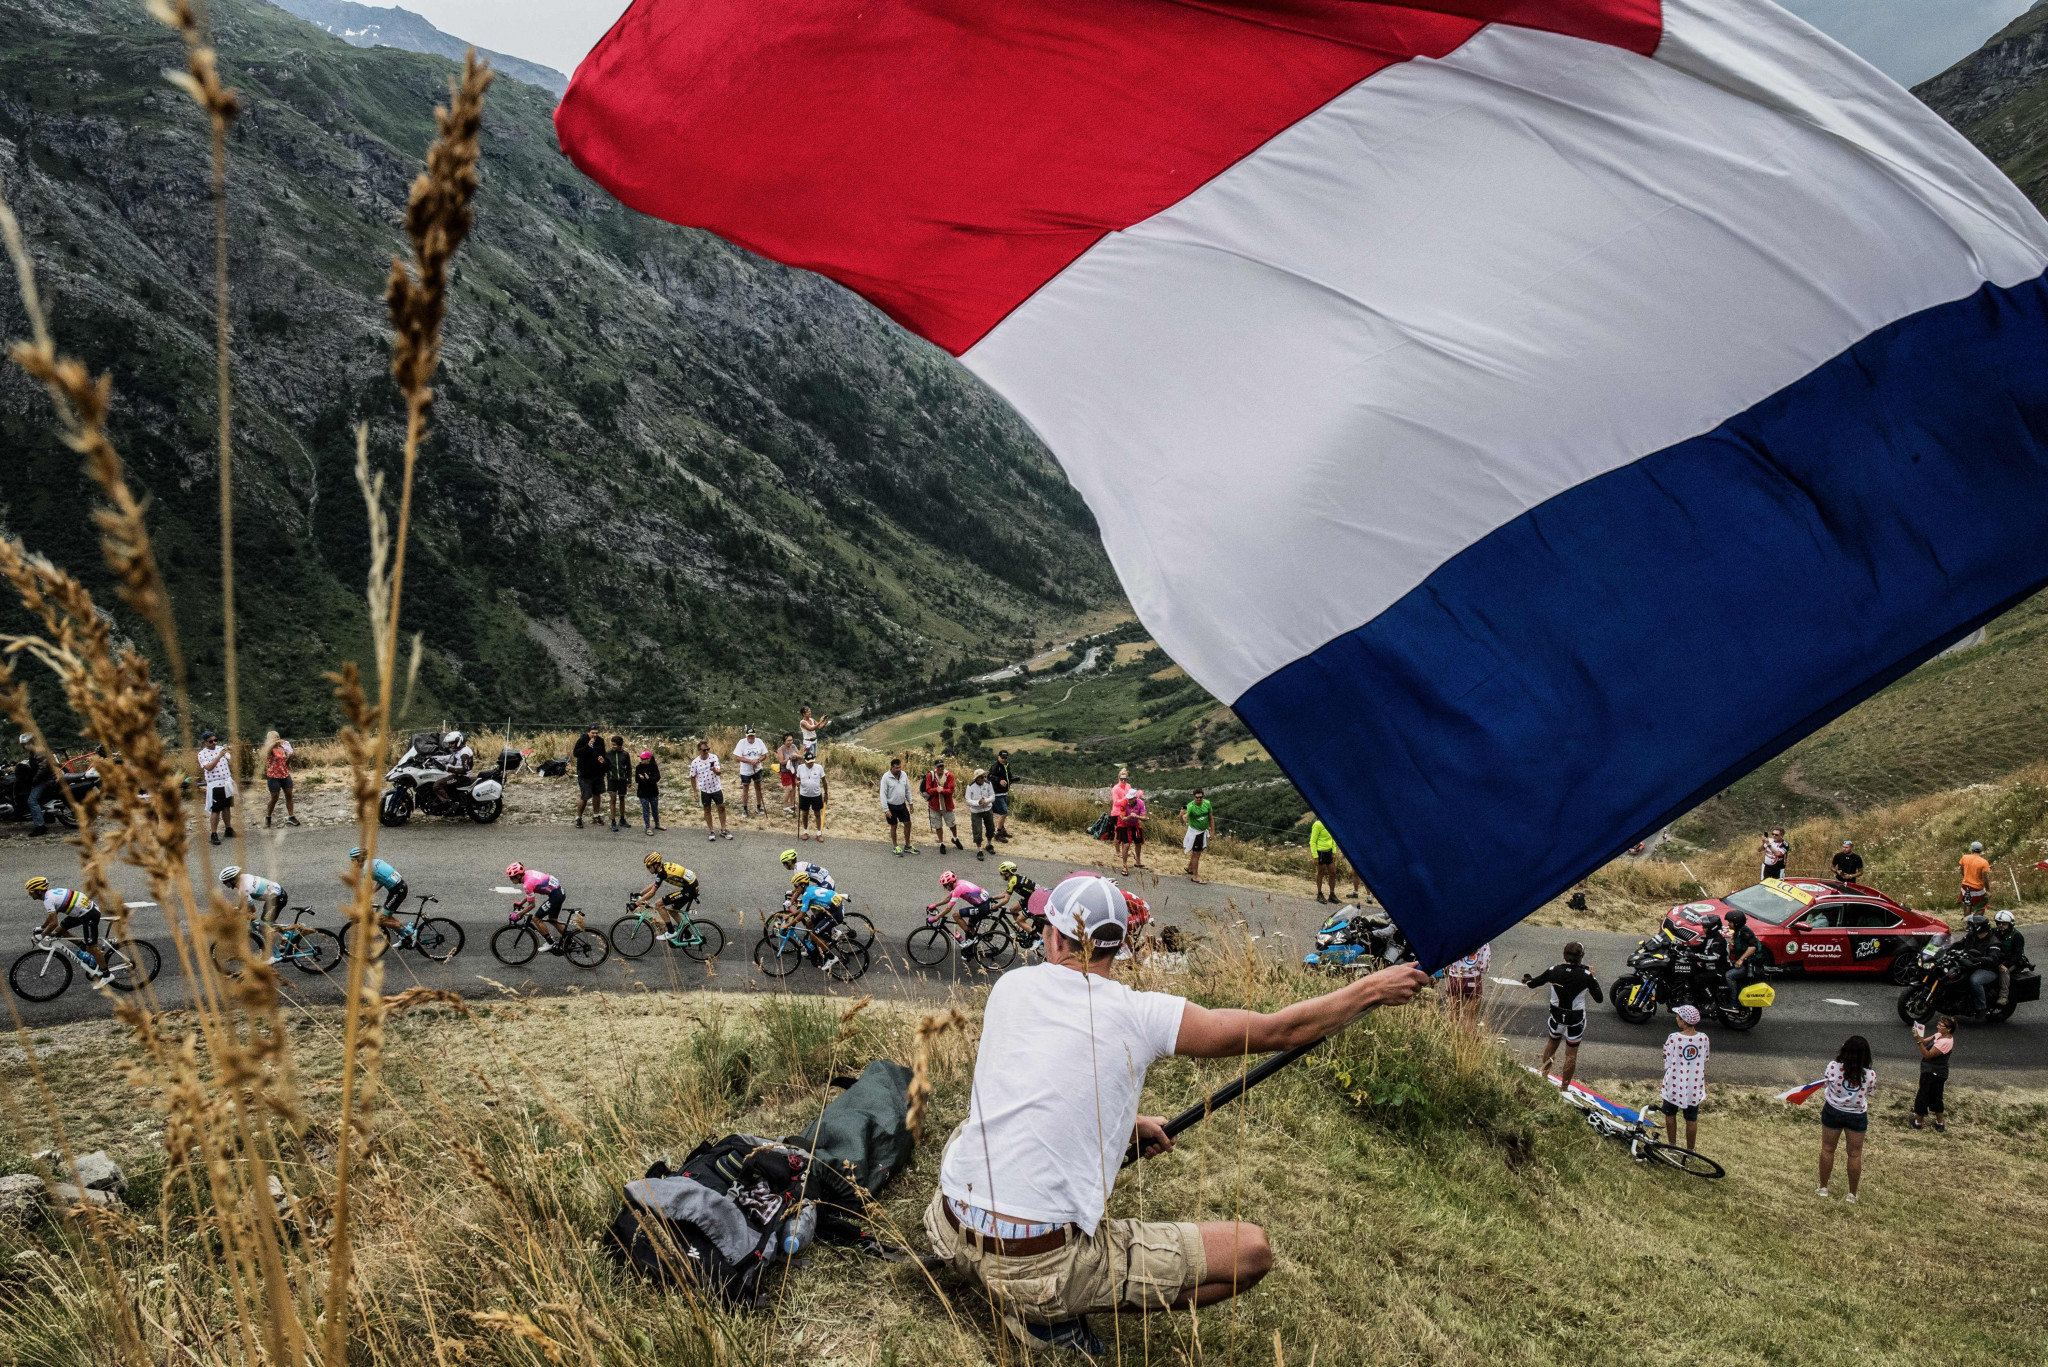 Tour de France moved forward in 2021 to avoid Olympics clash